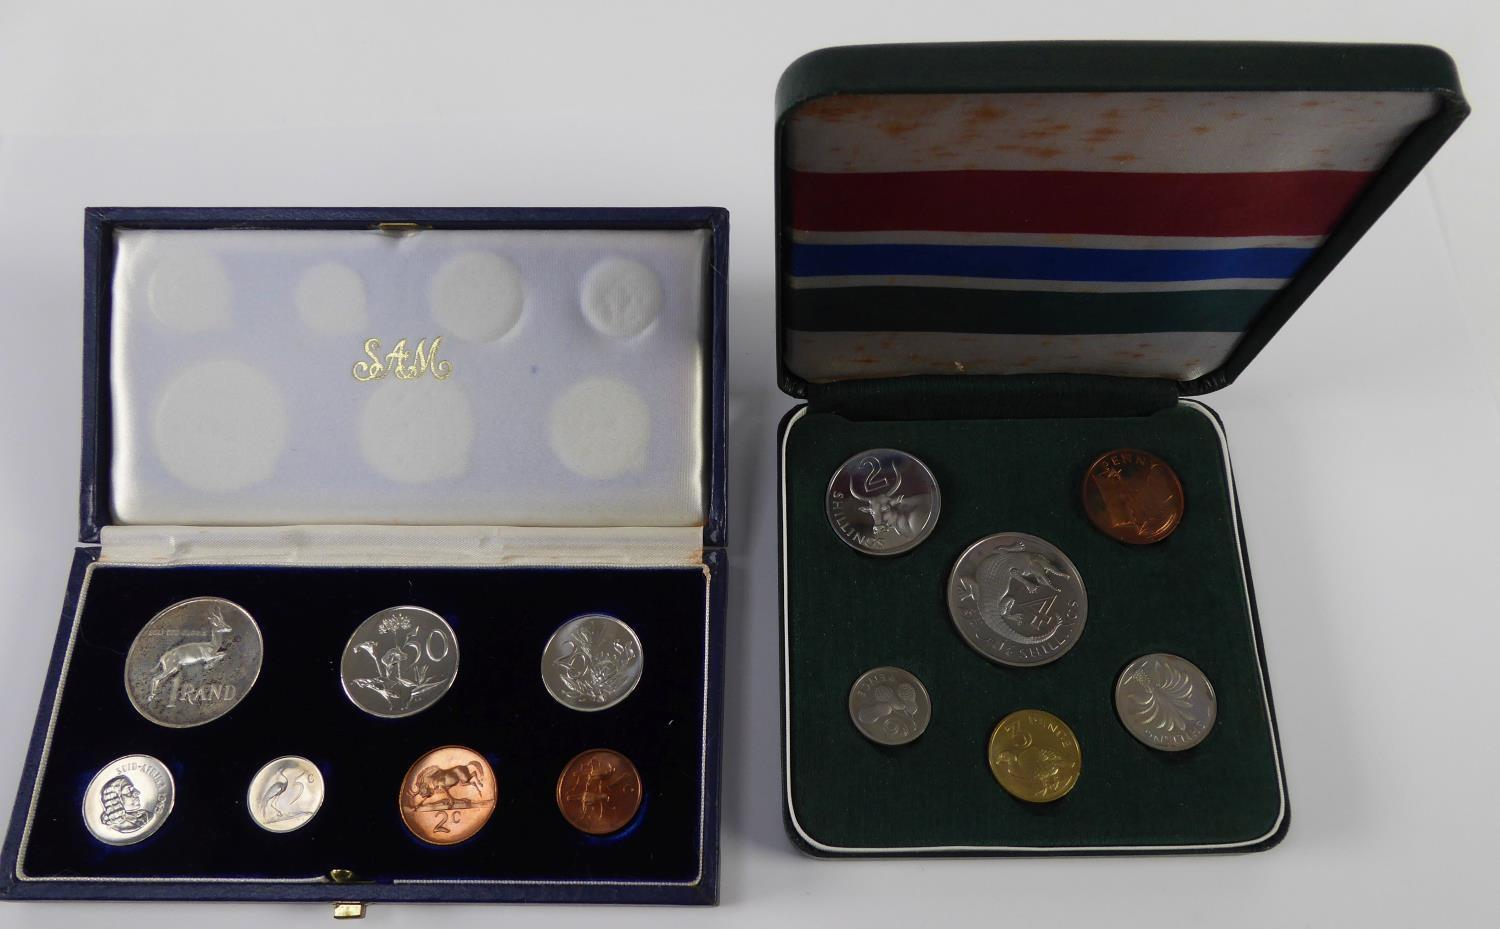 Lot 37 - SOUTH AFTICA PROOF SET OF SEVEN COINS, 1965 includes one rand to one cent, a similar SET OF SIX